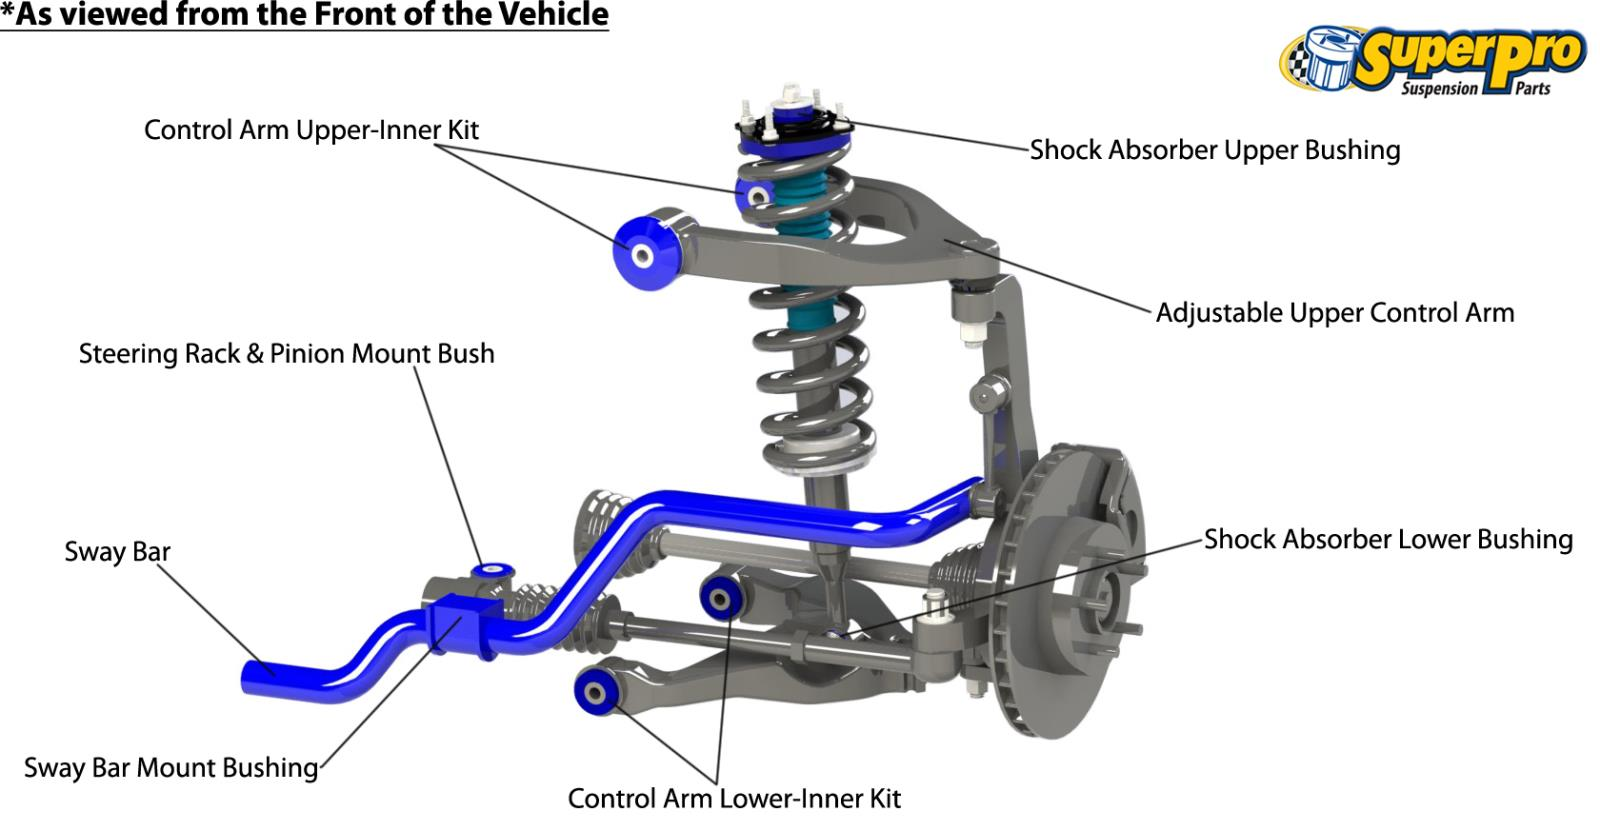 Front suspension diagram for MITSUBISHI PAJERO SPORT 2015-on - QE